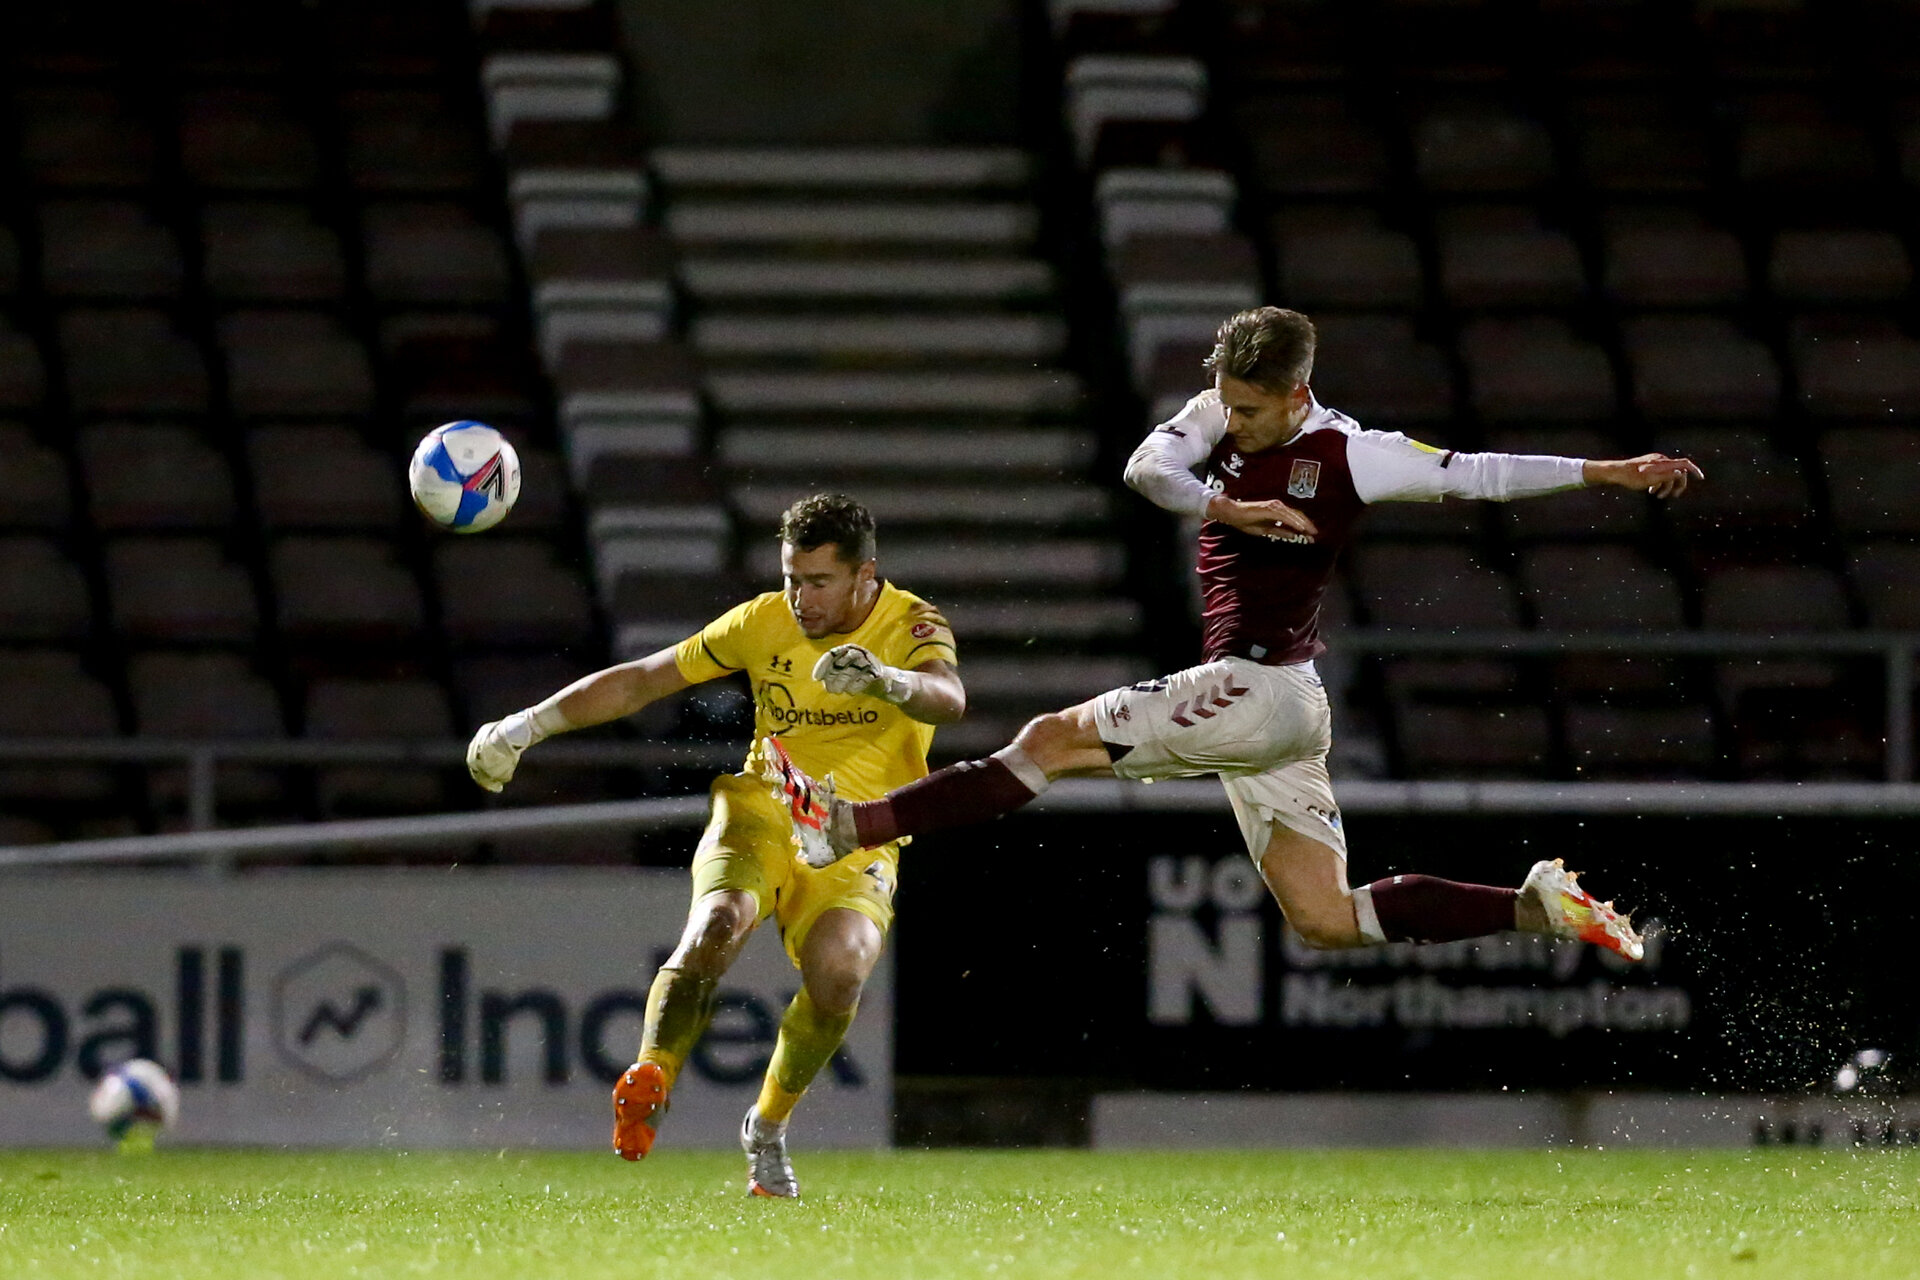 NORTHAMPTON, ENGLAND - OCTOBER 06: during EFL Cup match between Northampton Town FC and Southampton FC B Team at the PTS Academy Stadium on October 6, 2020 in Northampton, England. (Photo by Isabelle Field/Southampton FC via Getty Images)